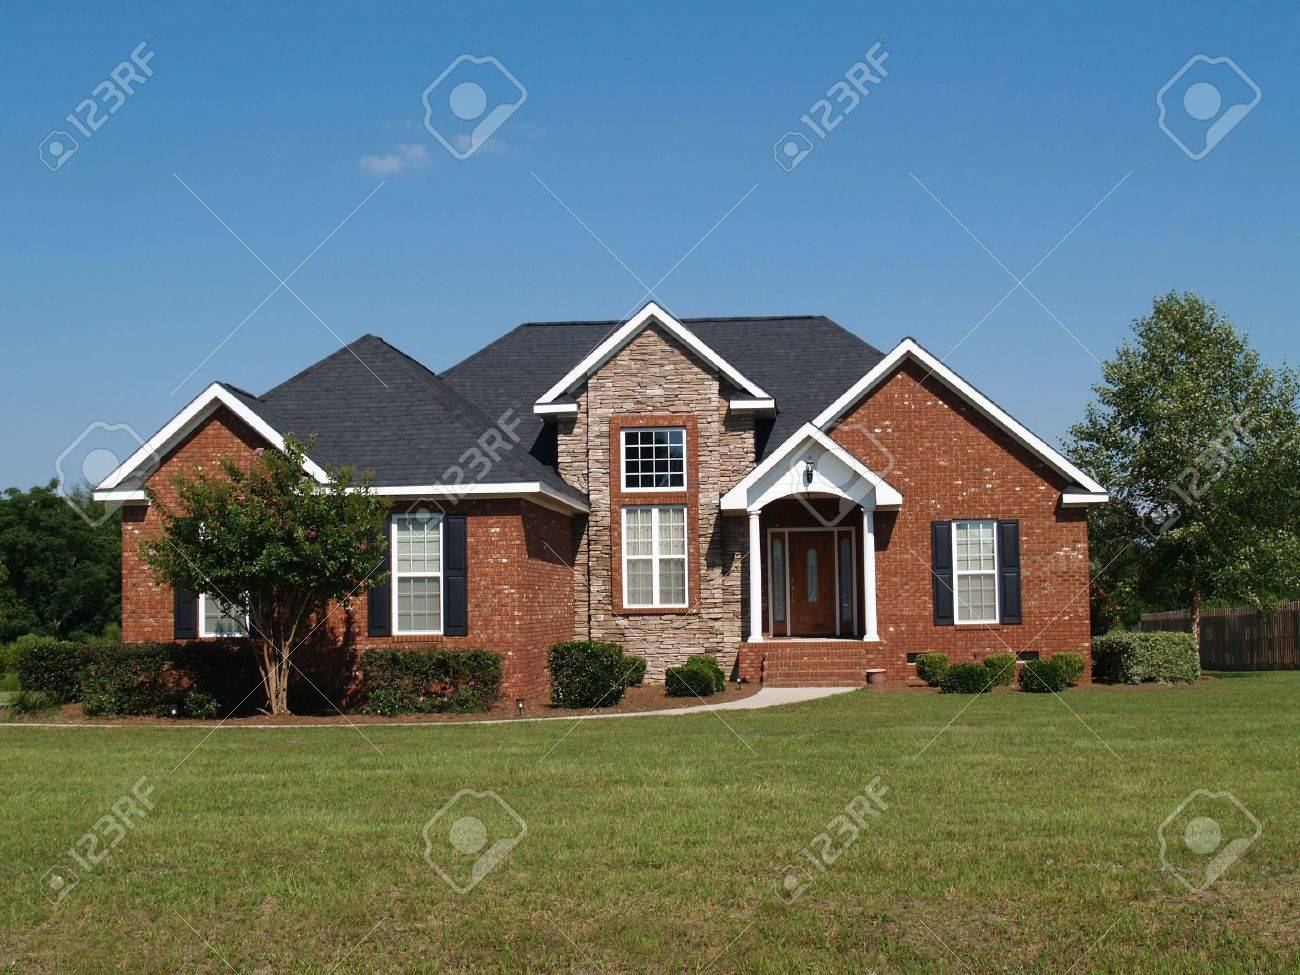 One story new stone and brick residential home. - 6511114